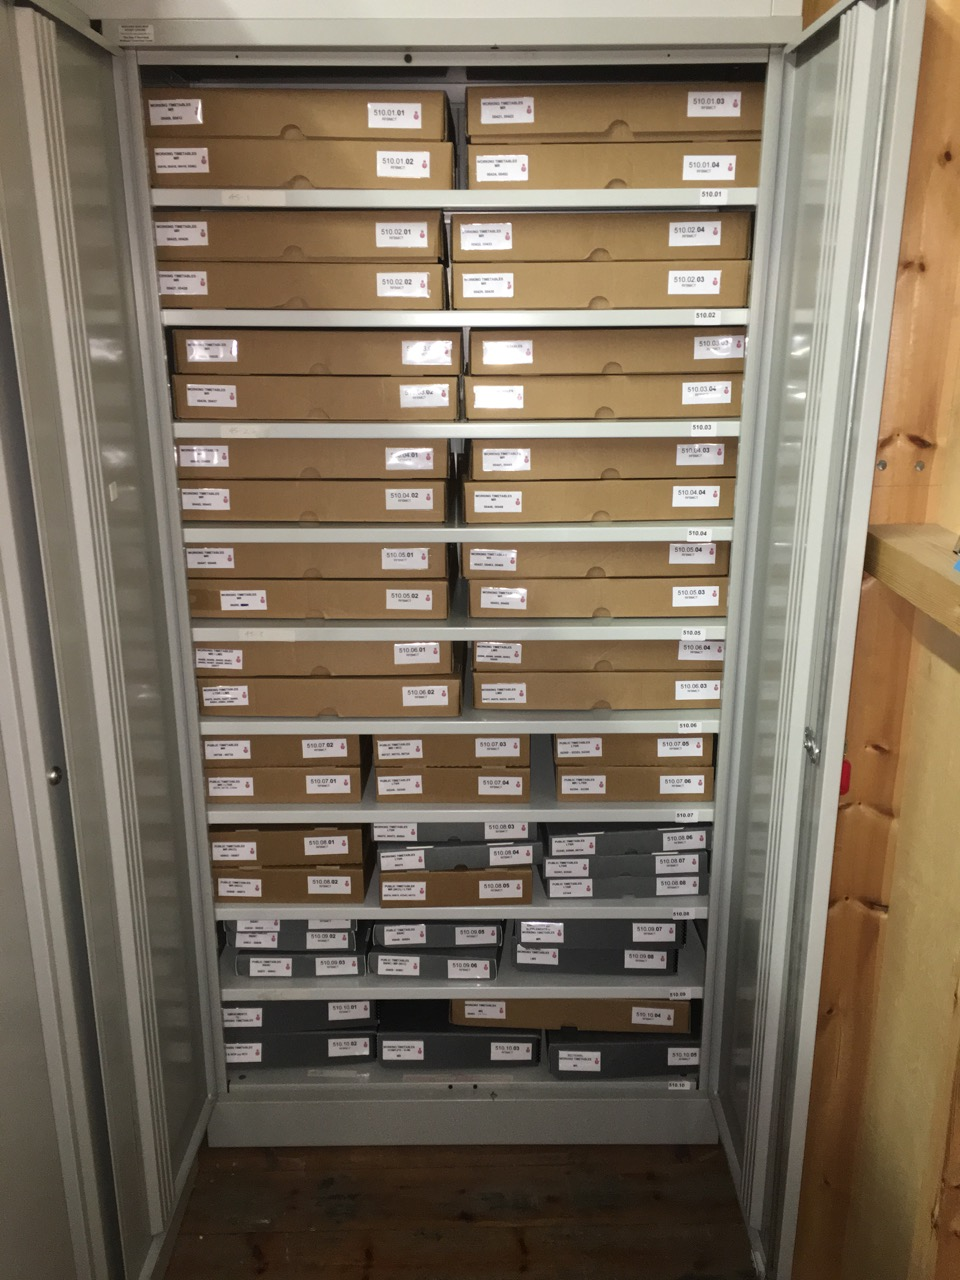 A steel cupboard filled from top to bottom with boxes containing archive material